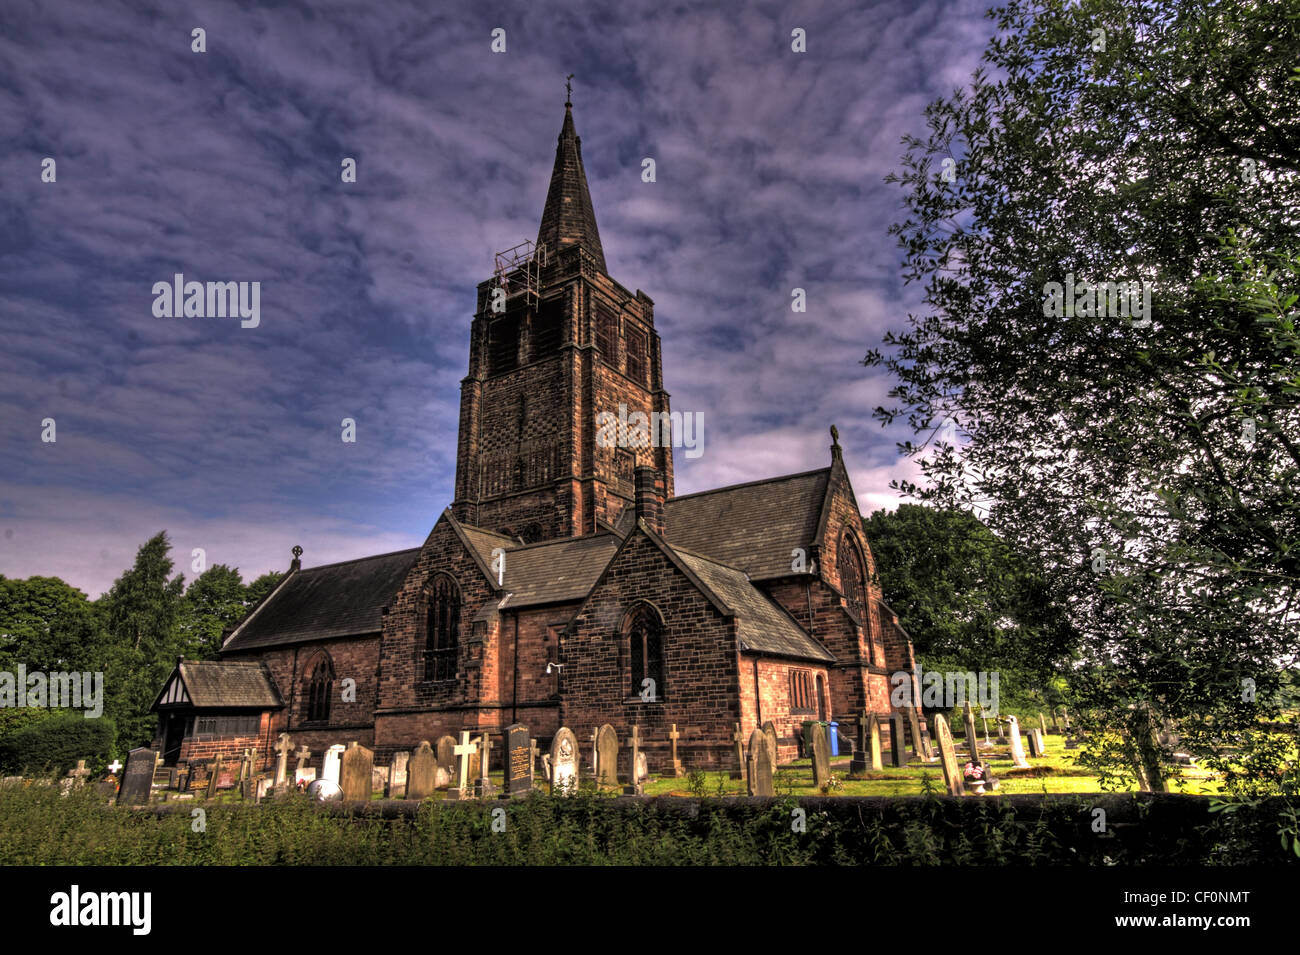 St Johns Church, Walton, Warrington, Cheshire, England, UK - Stock Image